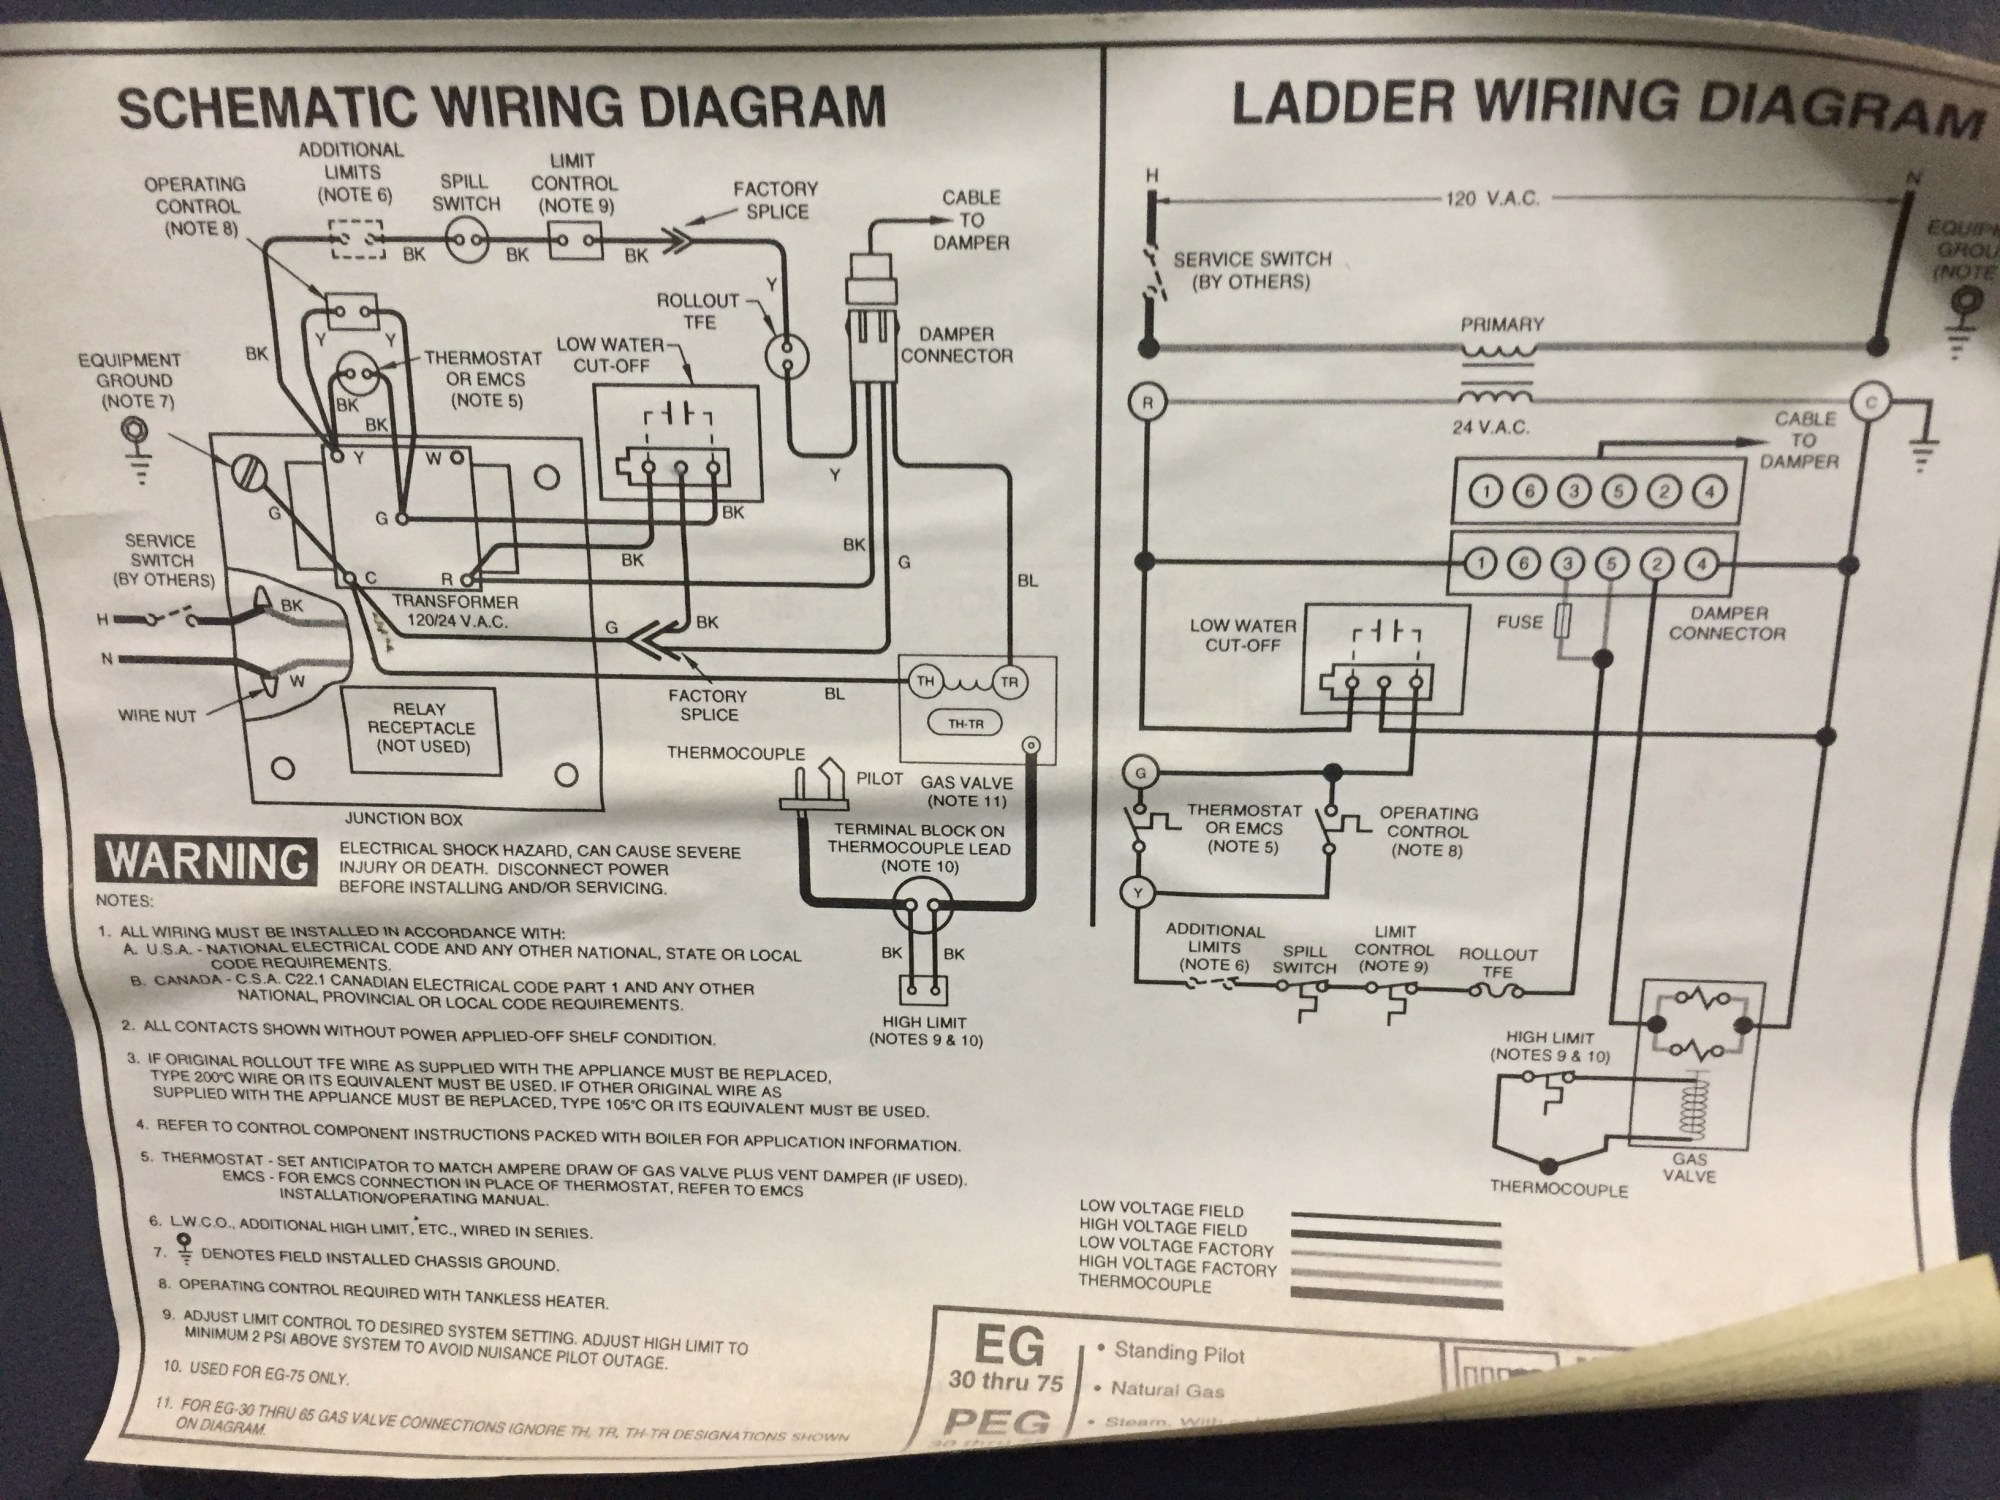 hight resolution of weil mclain boiler schematic diagram wiring diagram ebookhow to add a c wire to  [ 2000 x 1500 Pixel ]